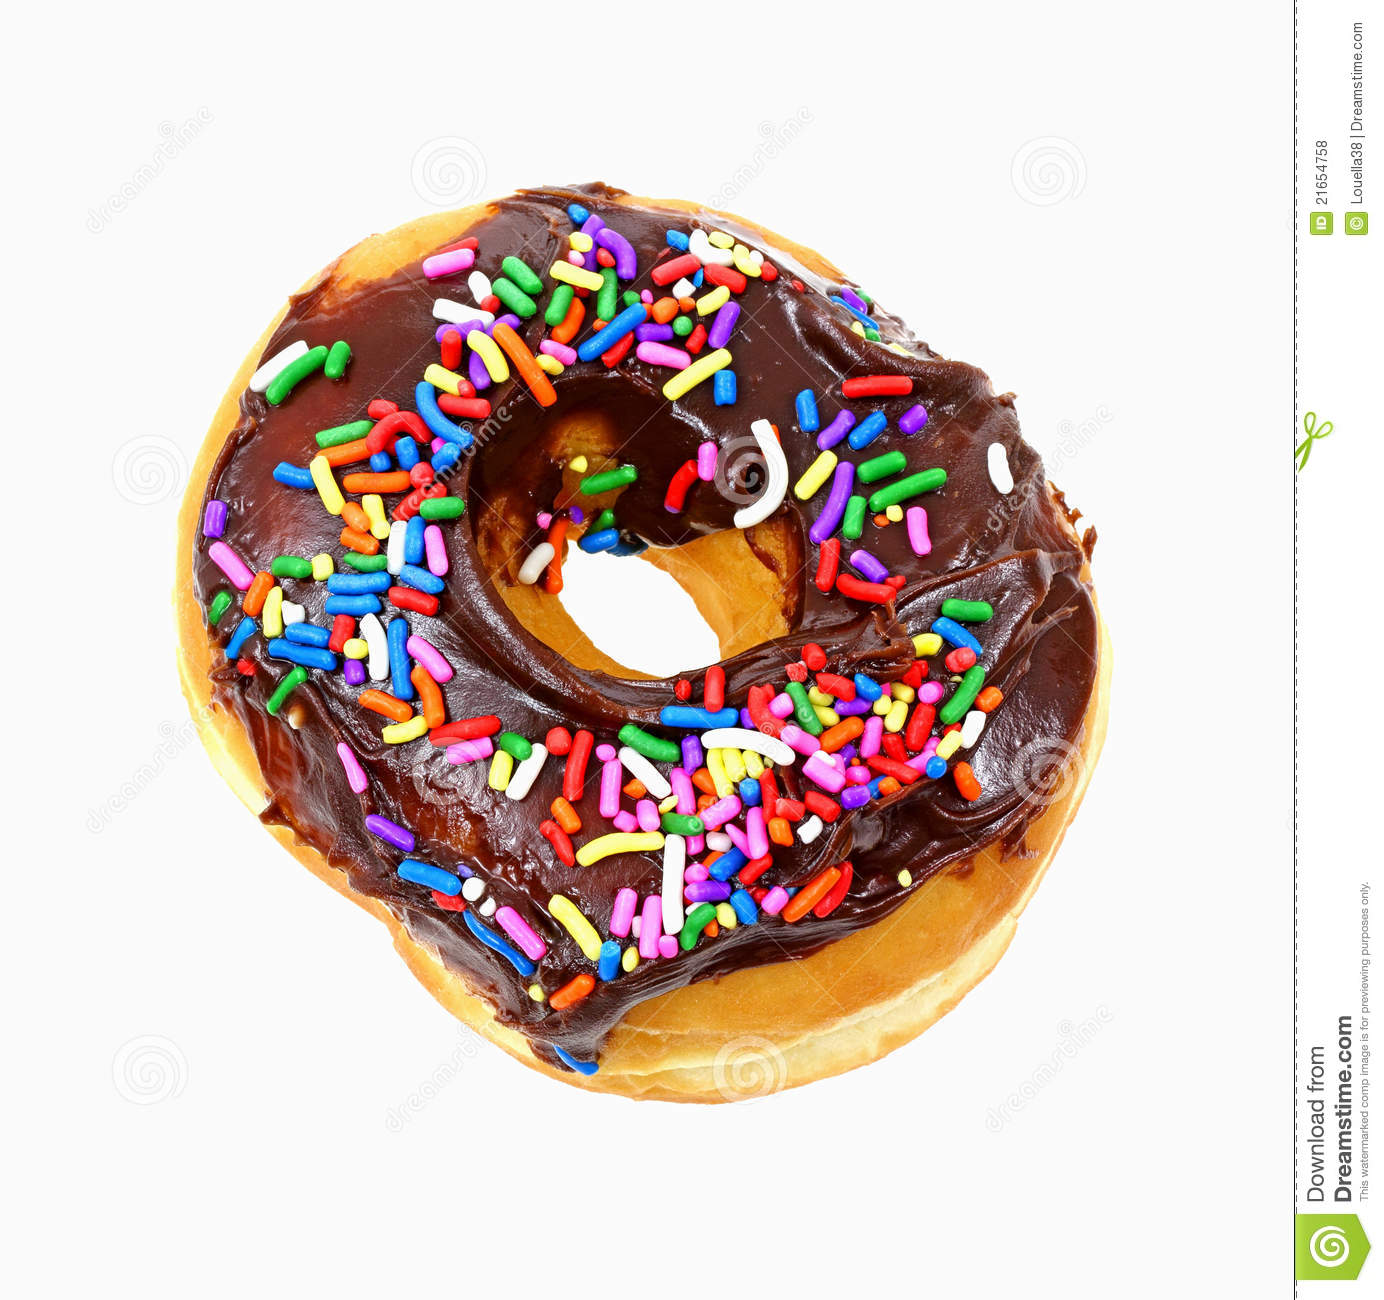 Chocolate Frosted Donut Sprinkles Overhead View Stock